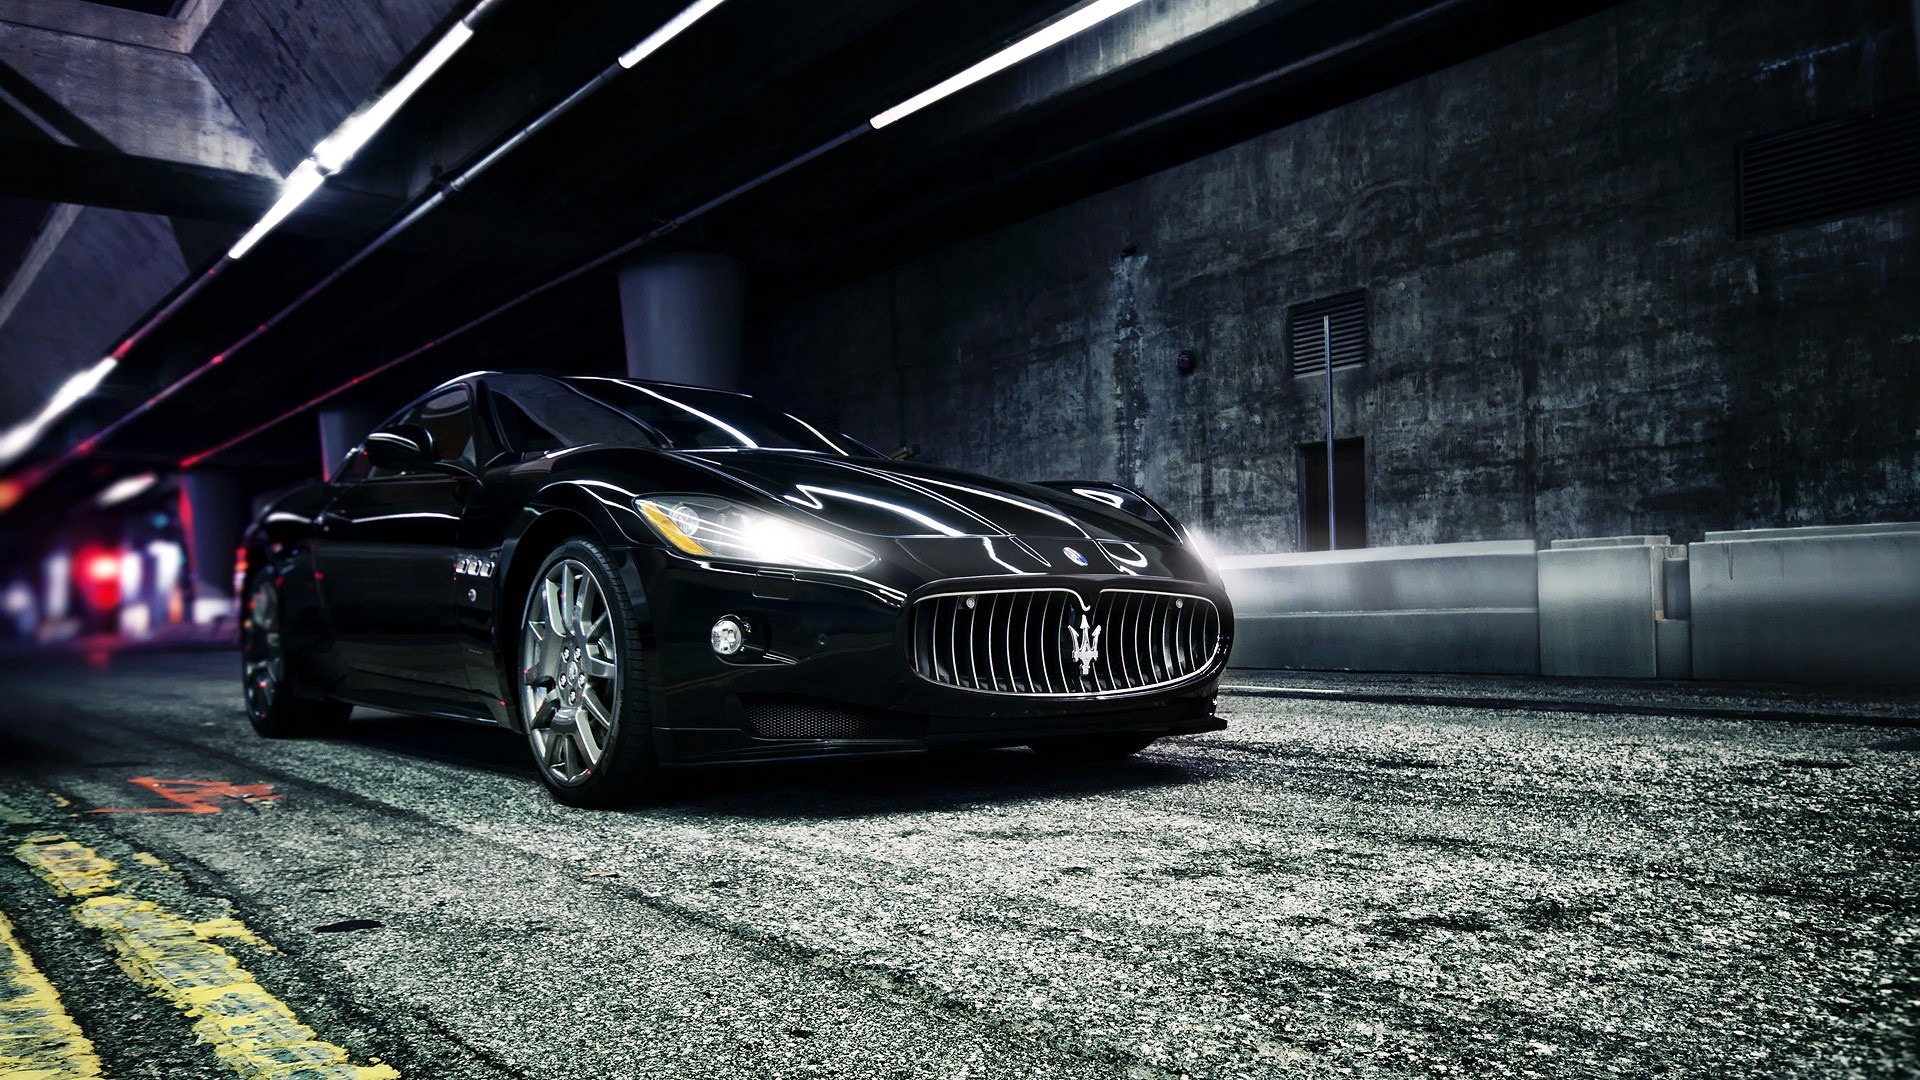 Full HD Maserati Ghibli Wallpaper | Full HD Pictures